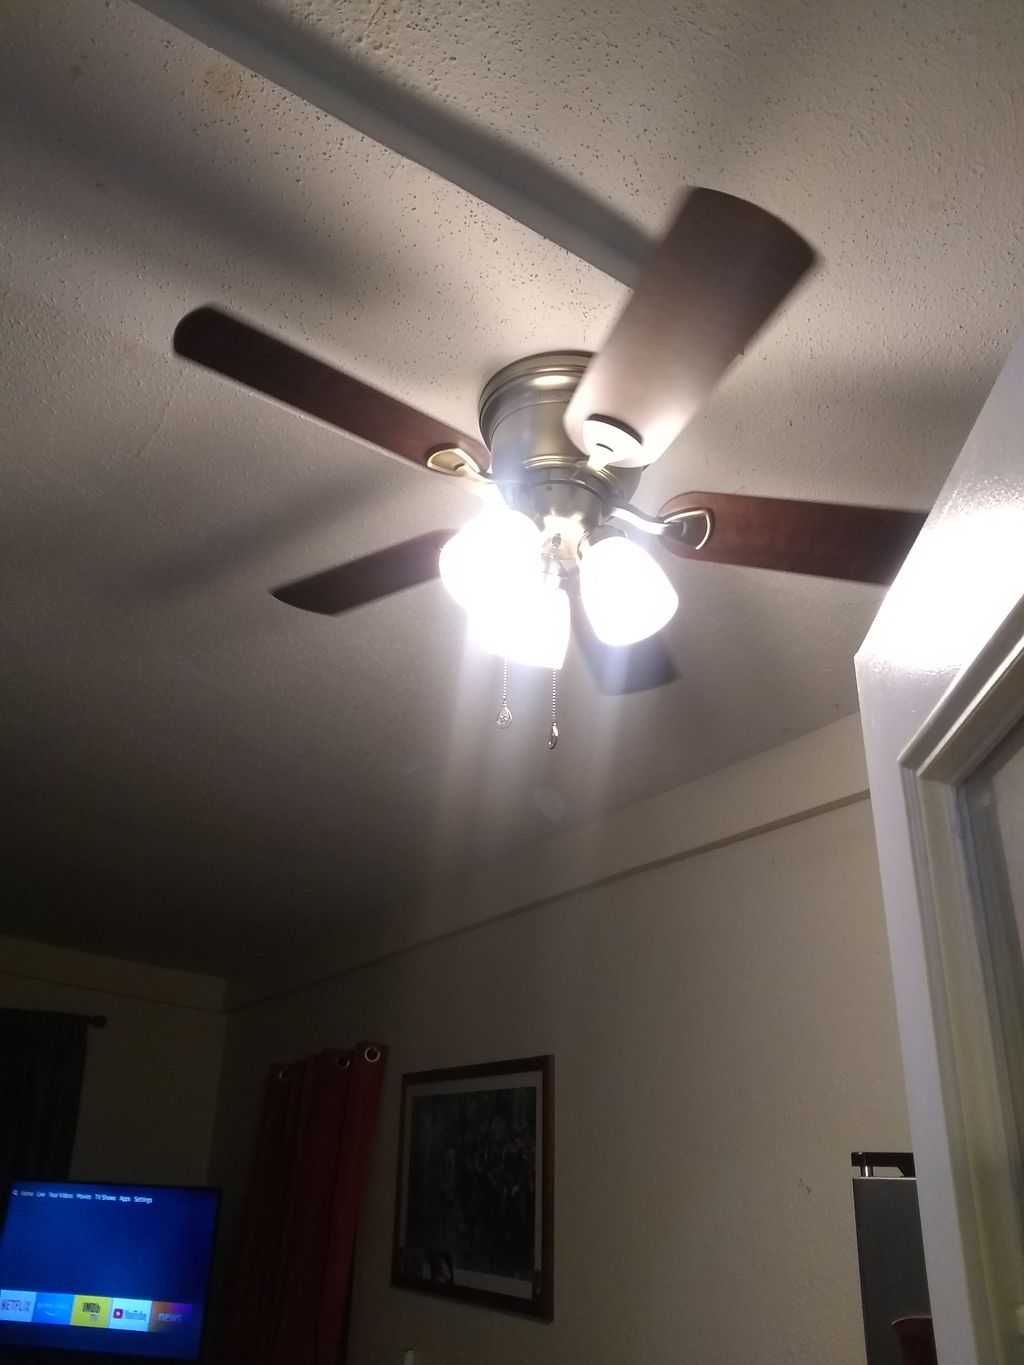 Ceiling fan and light installation